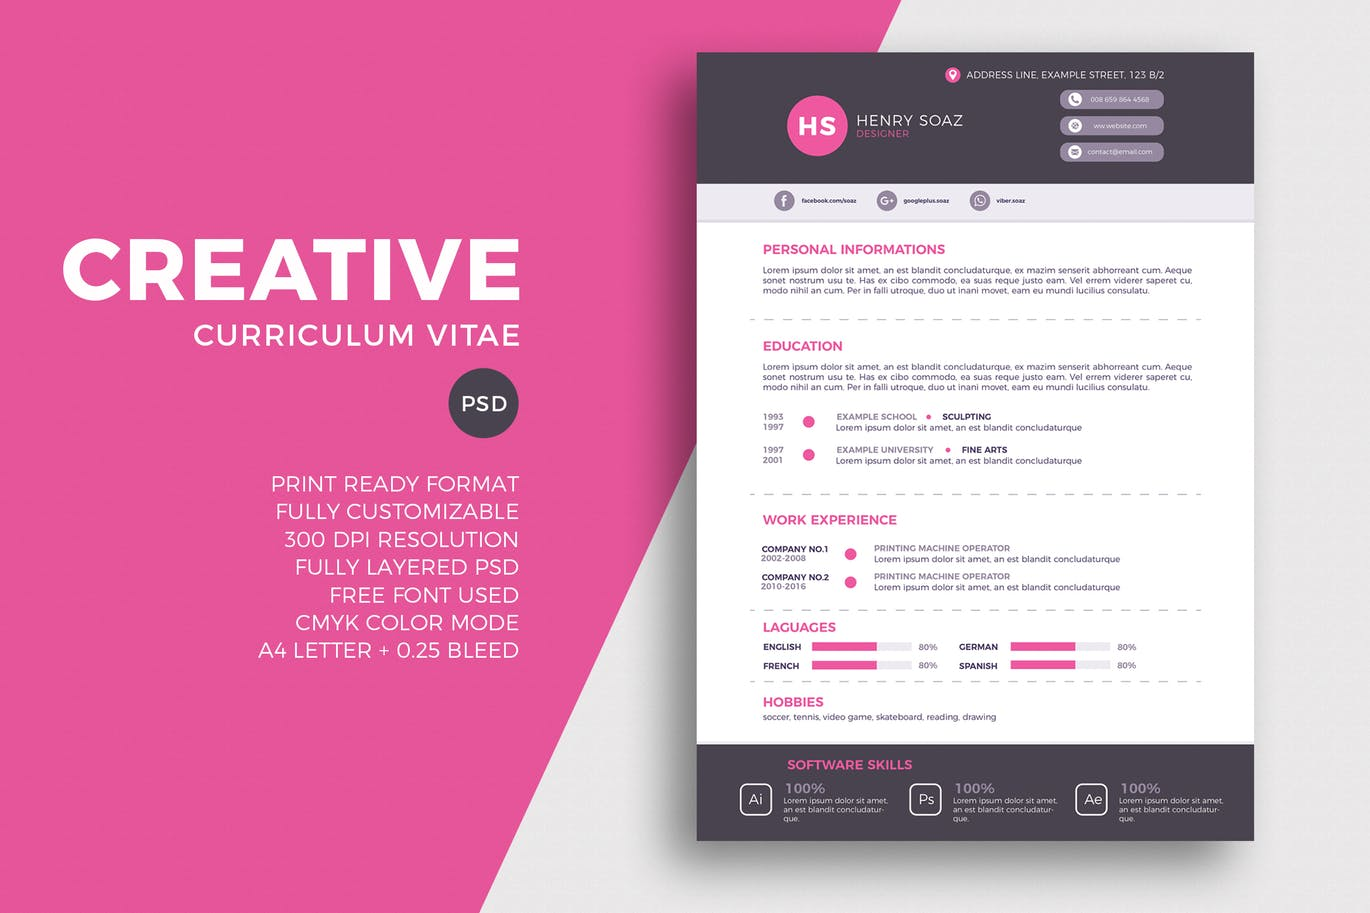 A Simple Yet A Creative Resume Template That Will Suit Almost Any Type Of A  Job Application. The Template Is Available In Print Ready PSD Format.  Resume Or Curriculum Vitae